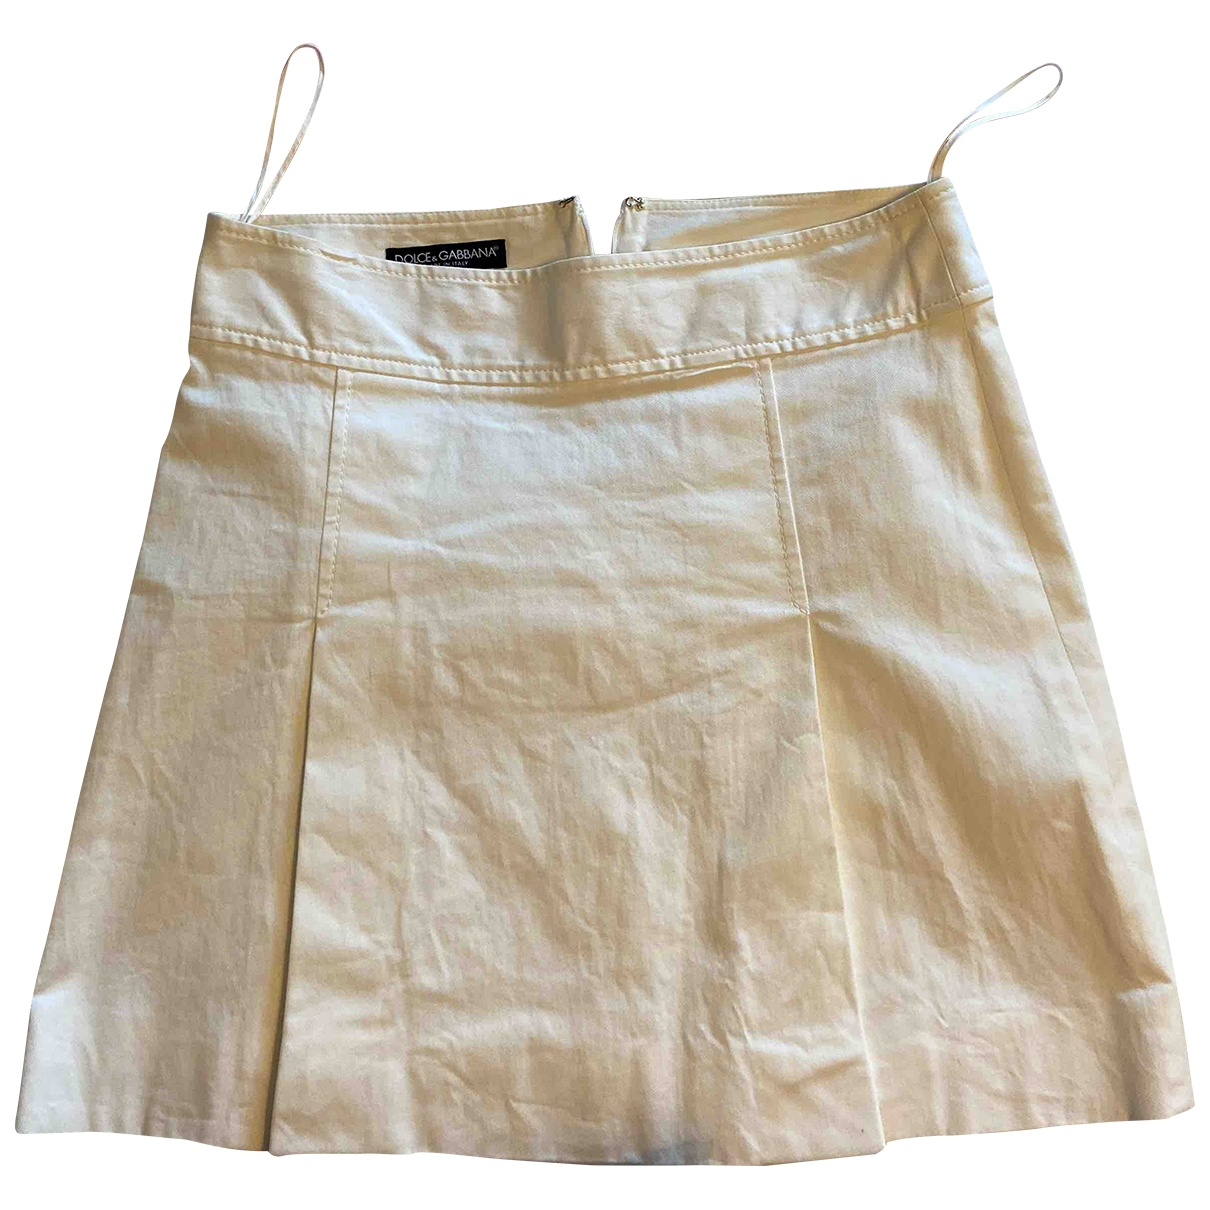 Dolce & Gabbana \N White Cotton skirt for Women 38 FR